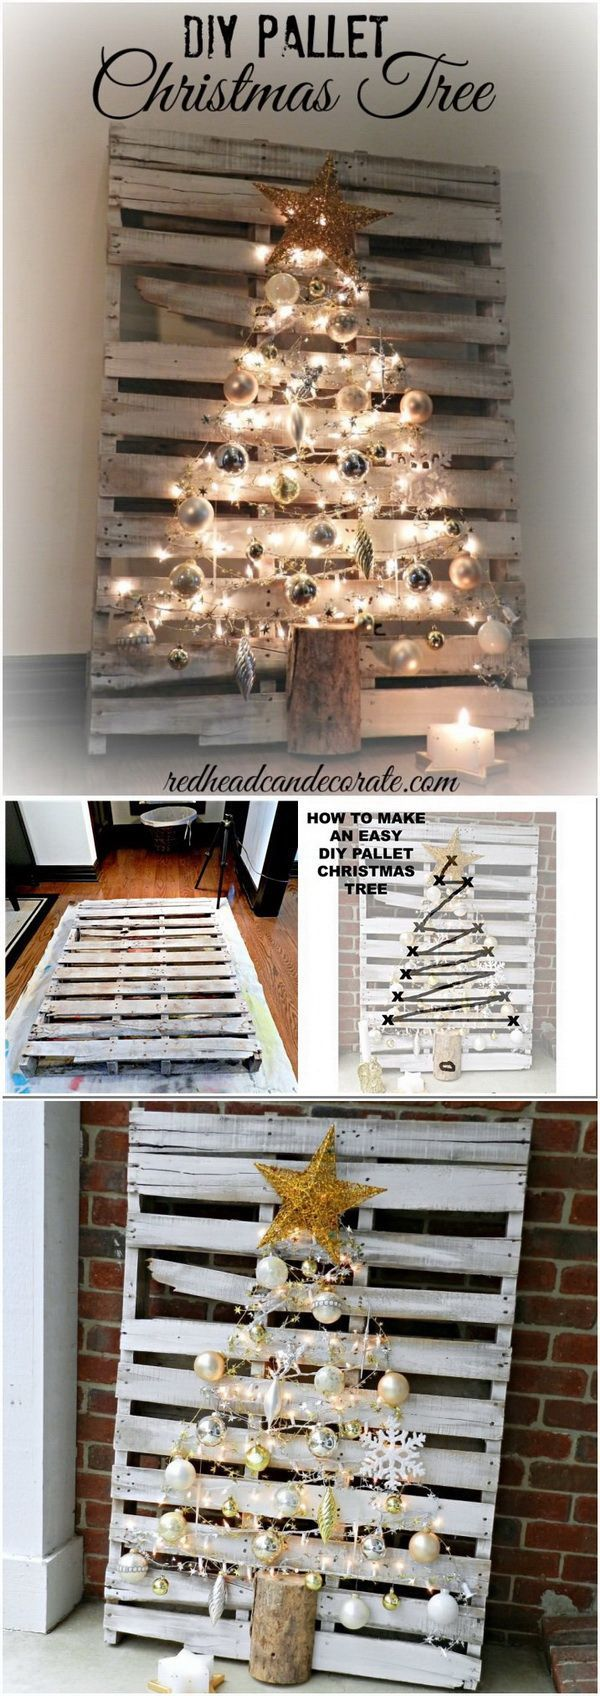 Best 25+ Pallet projects christmas ideas on Pinterest